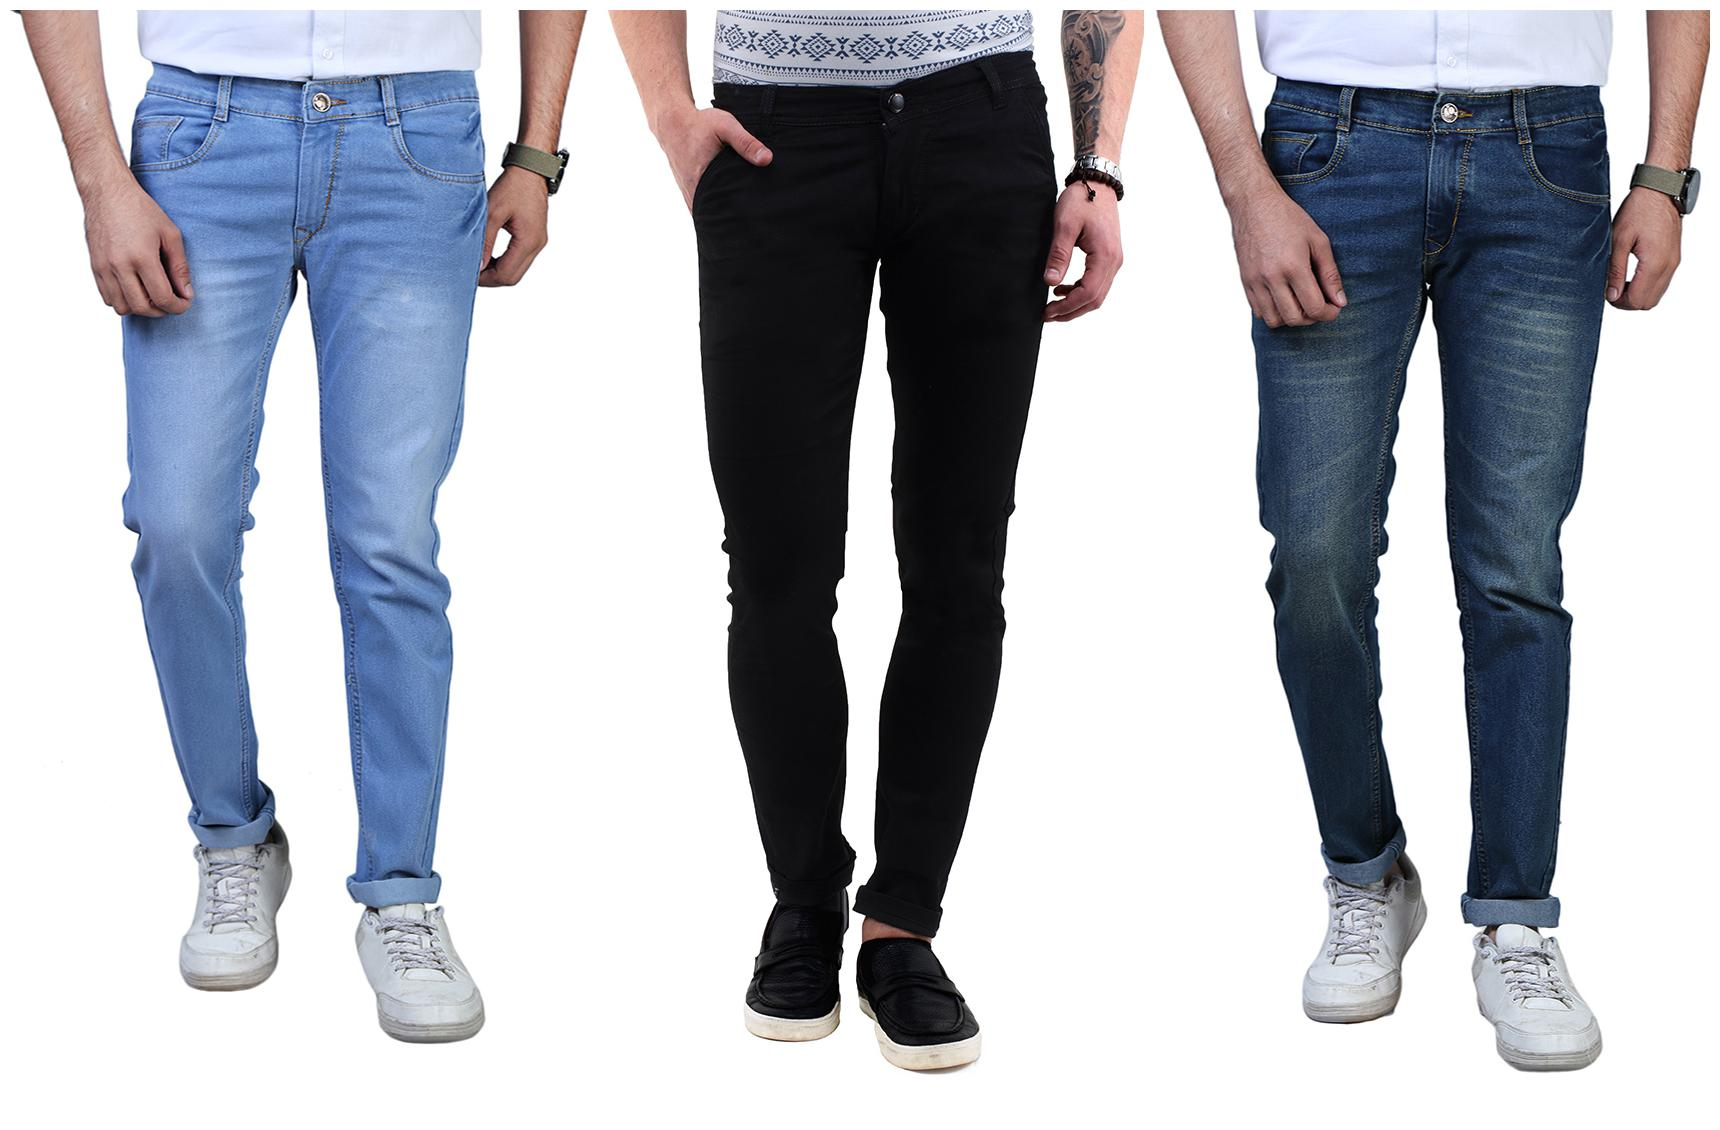 https://assetscdn1.paytm.com/images/catalog/product/A/AP/APPDRRAGON-MEN-SHOP2469562BEE1E5B/1573885966969_0..jpg